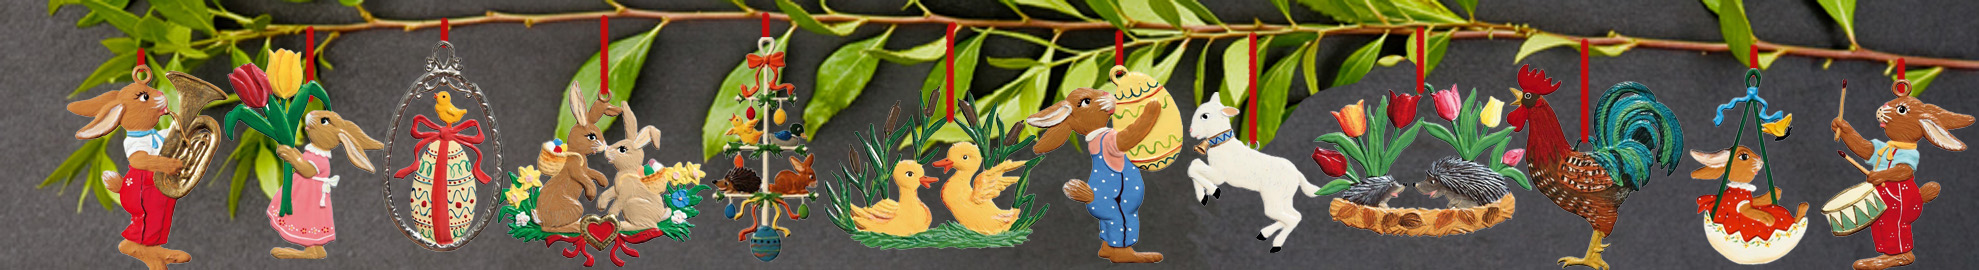 Spring/Easter Ornament Collection Image